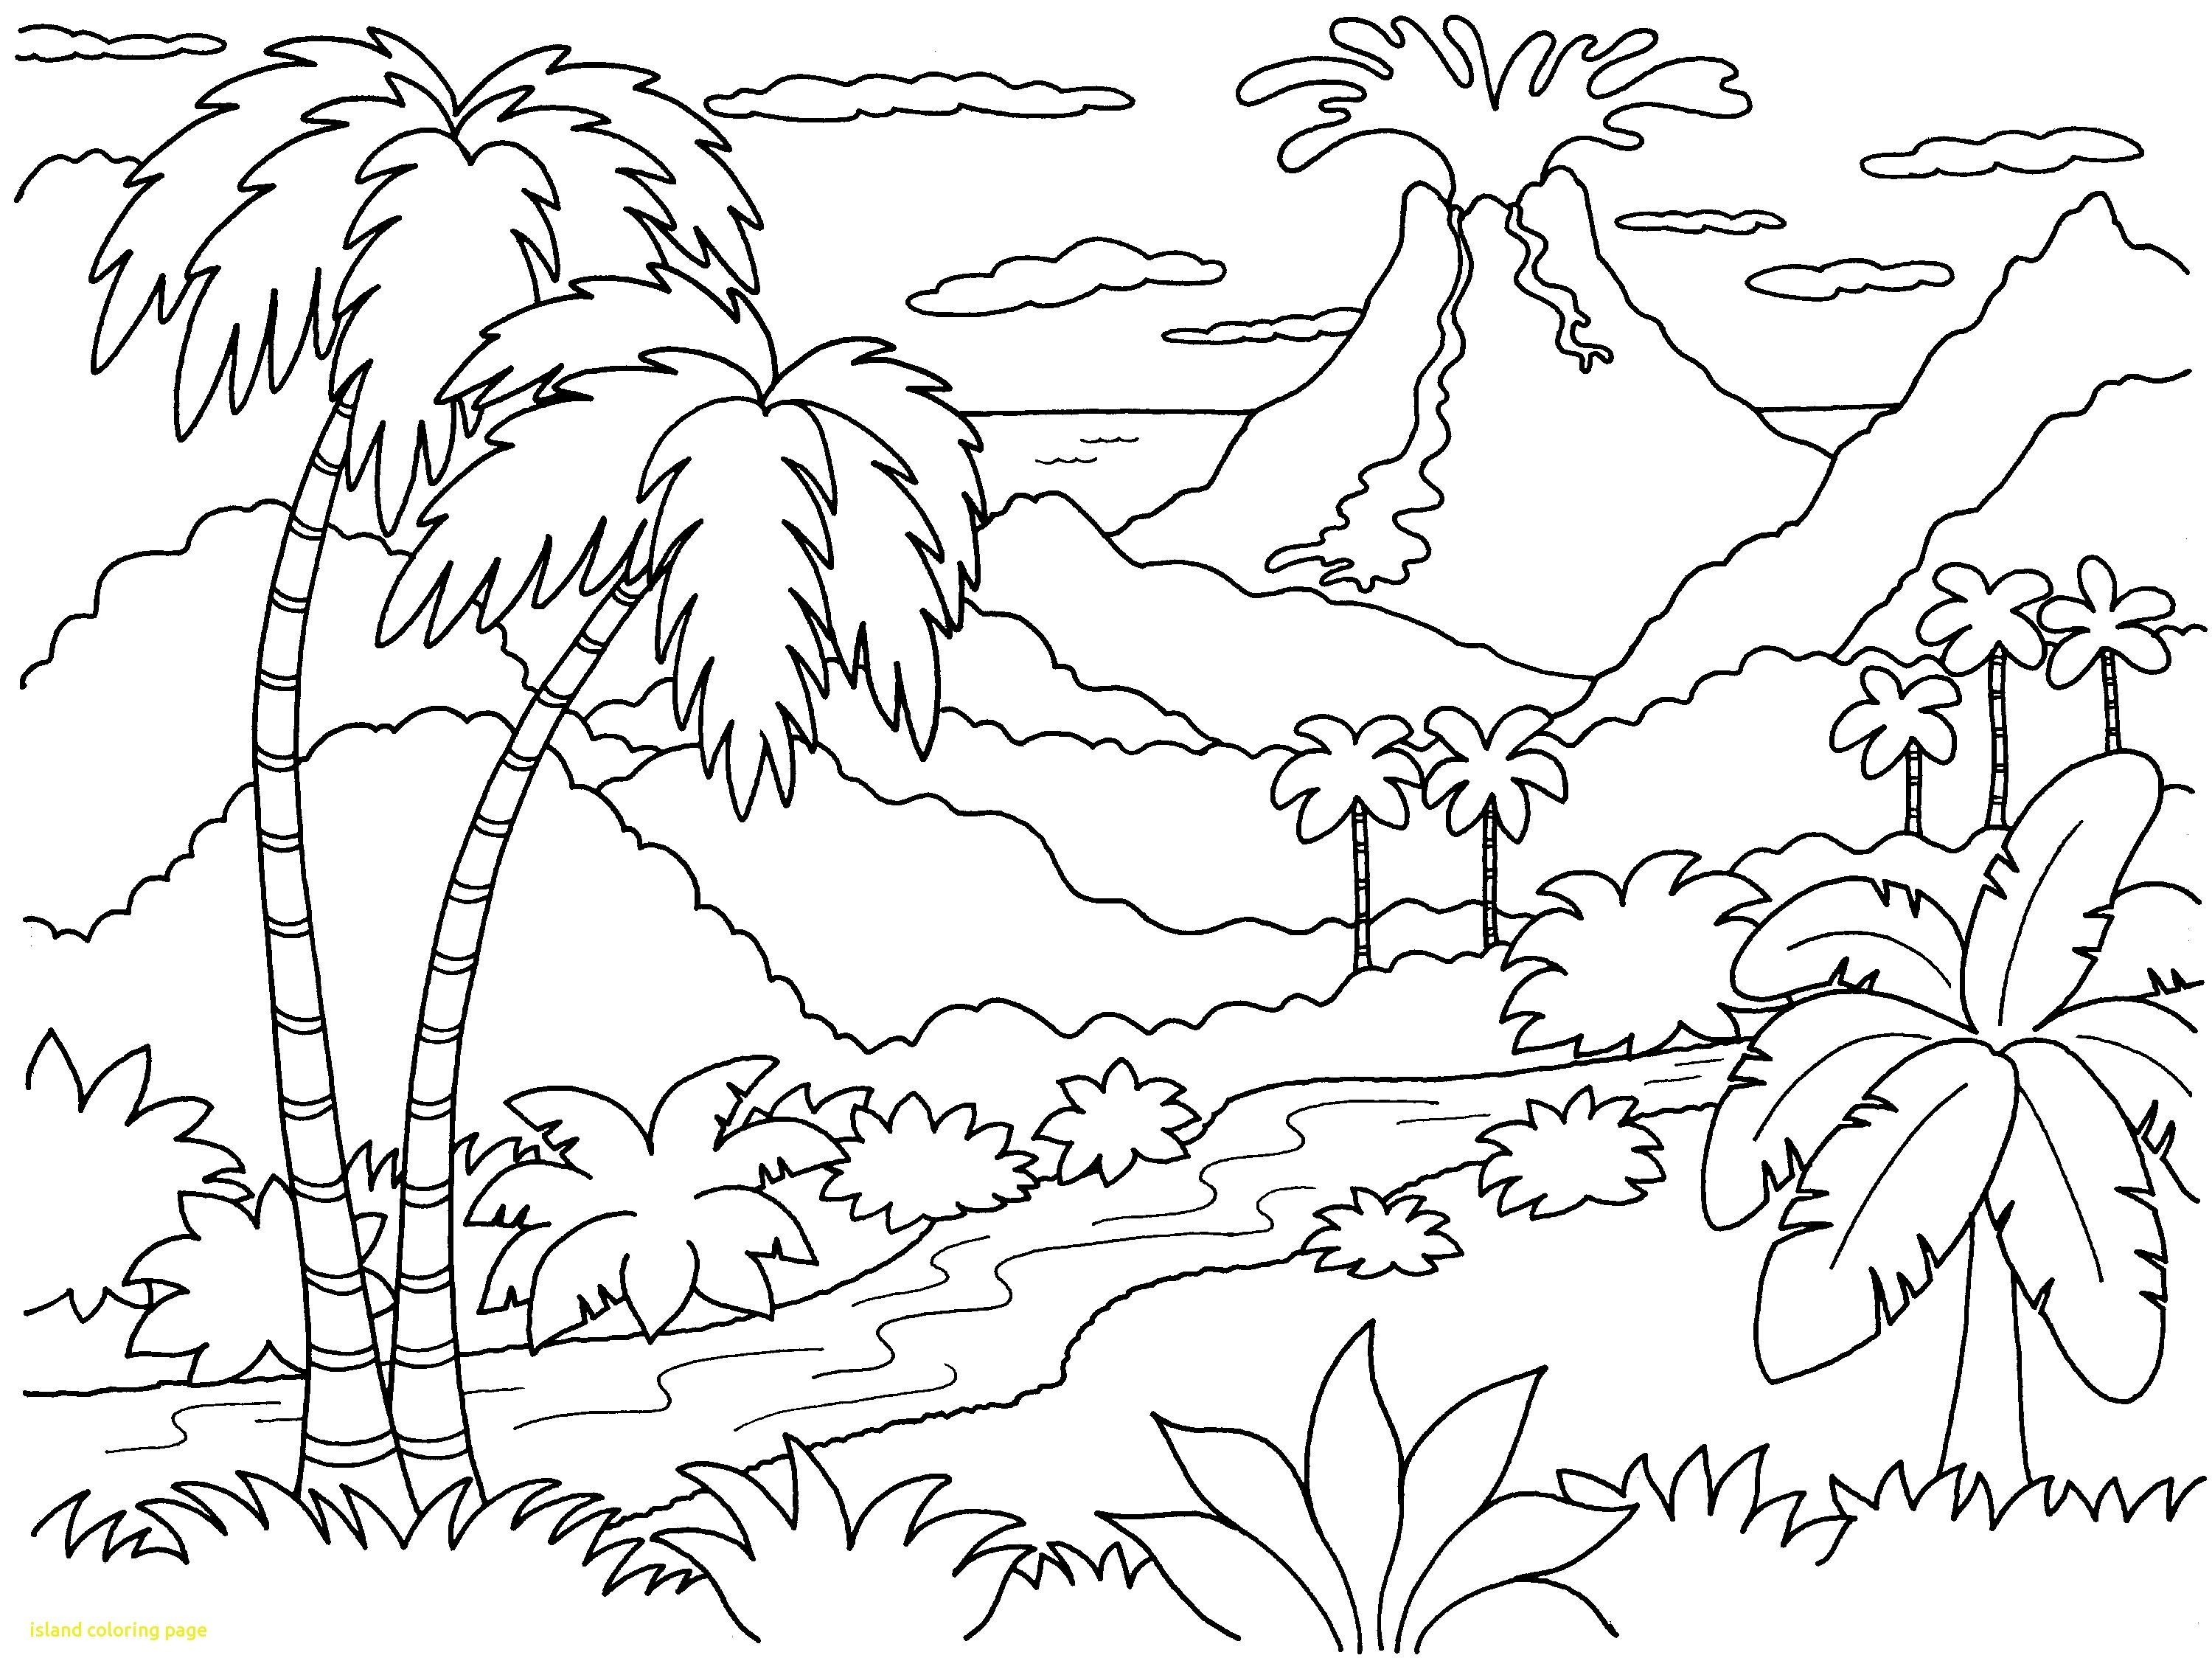 beach sunset coloring pages beach sunset coloring pages at getcoloringscom free beach sunset pages coloring